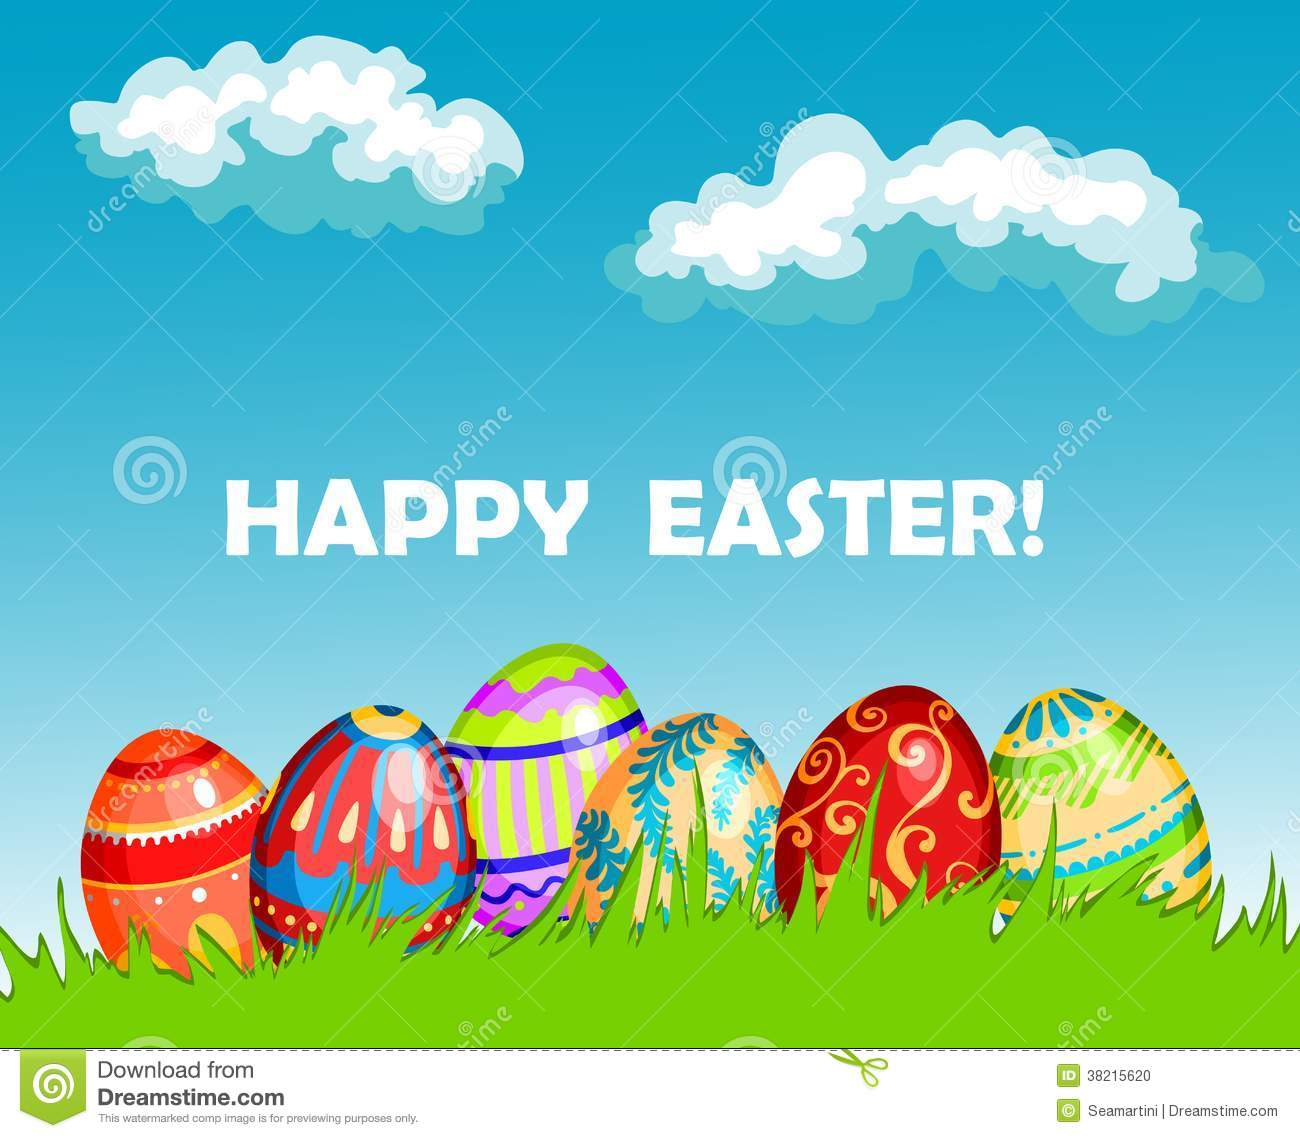 Colourful happy easter greeting card design stock vector colourful happy easter greeting card design m4hsunfo